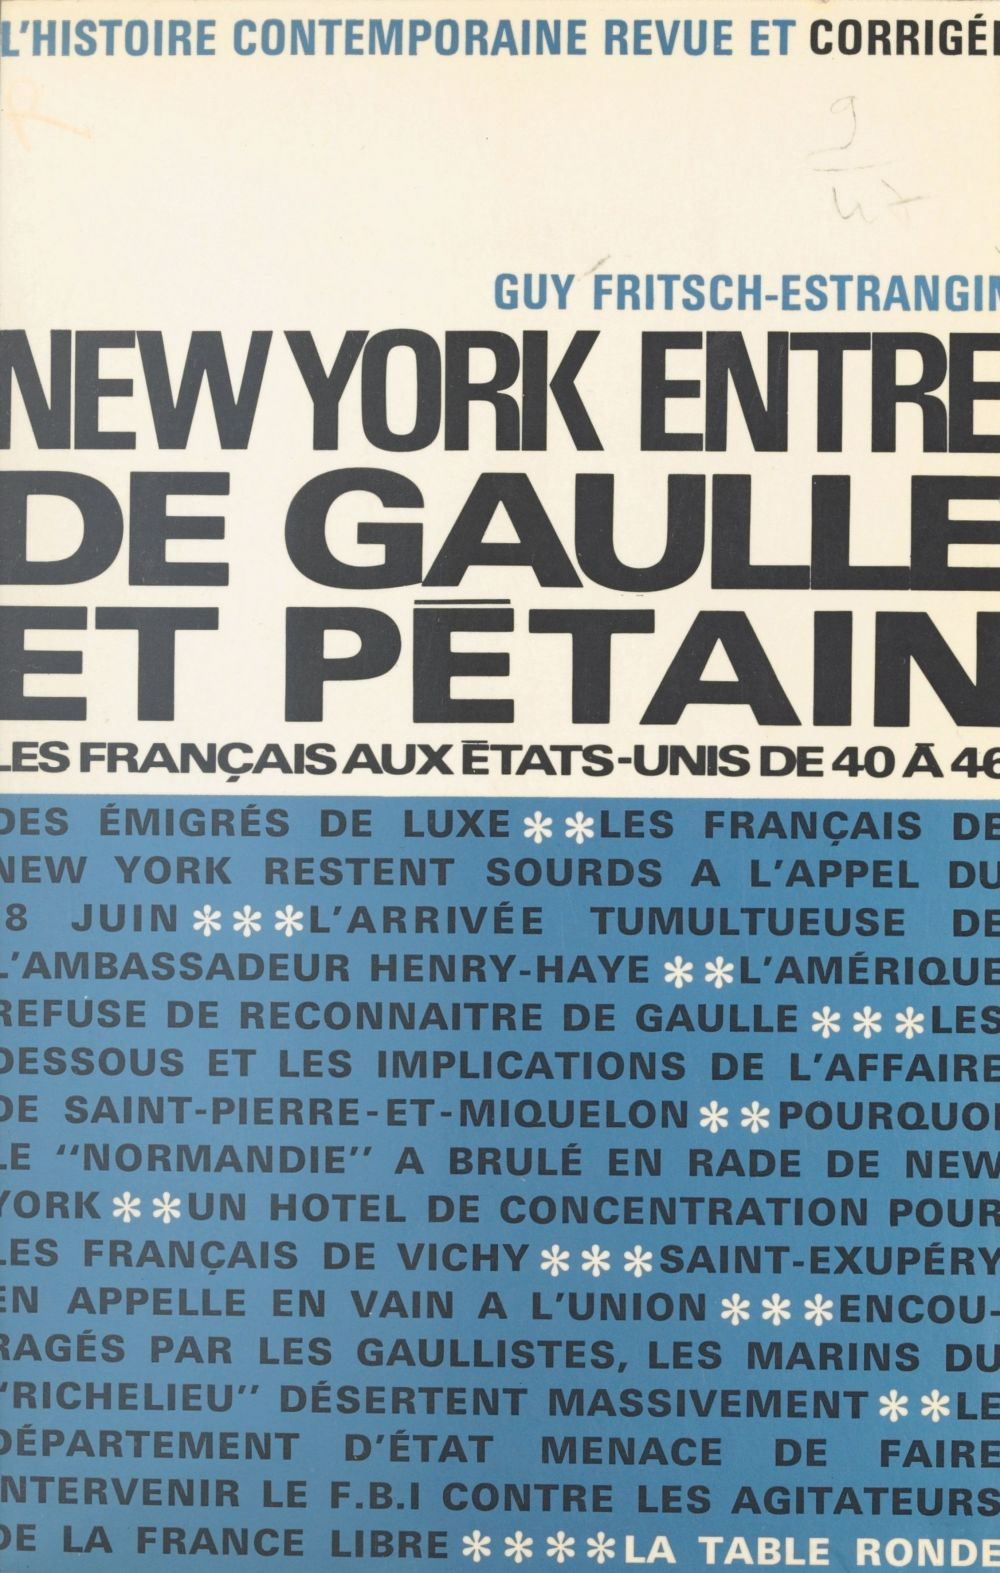 New York entre De Gaulle et Pétain